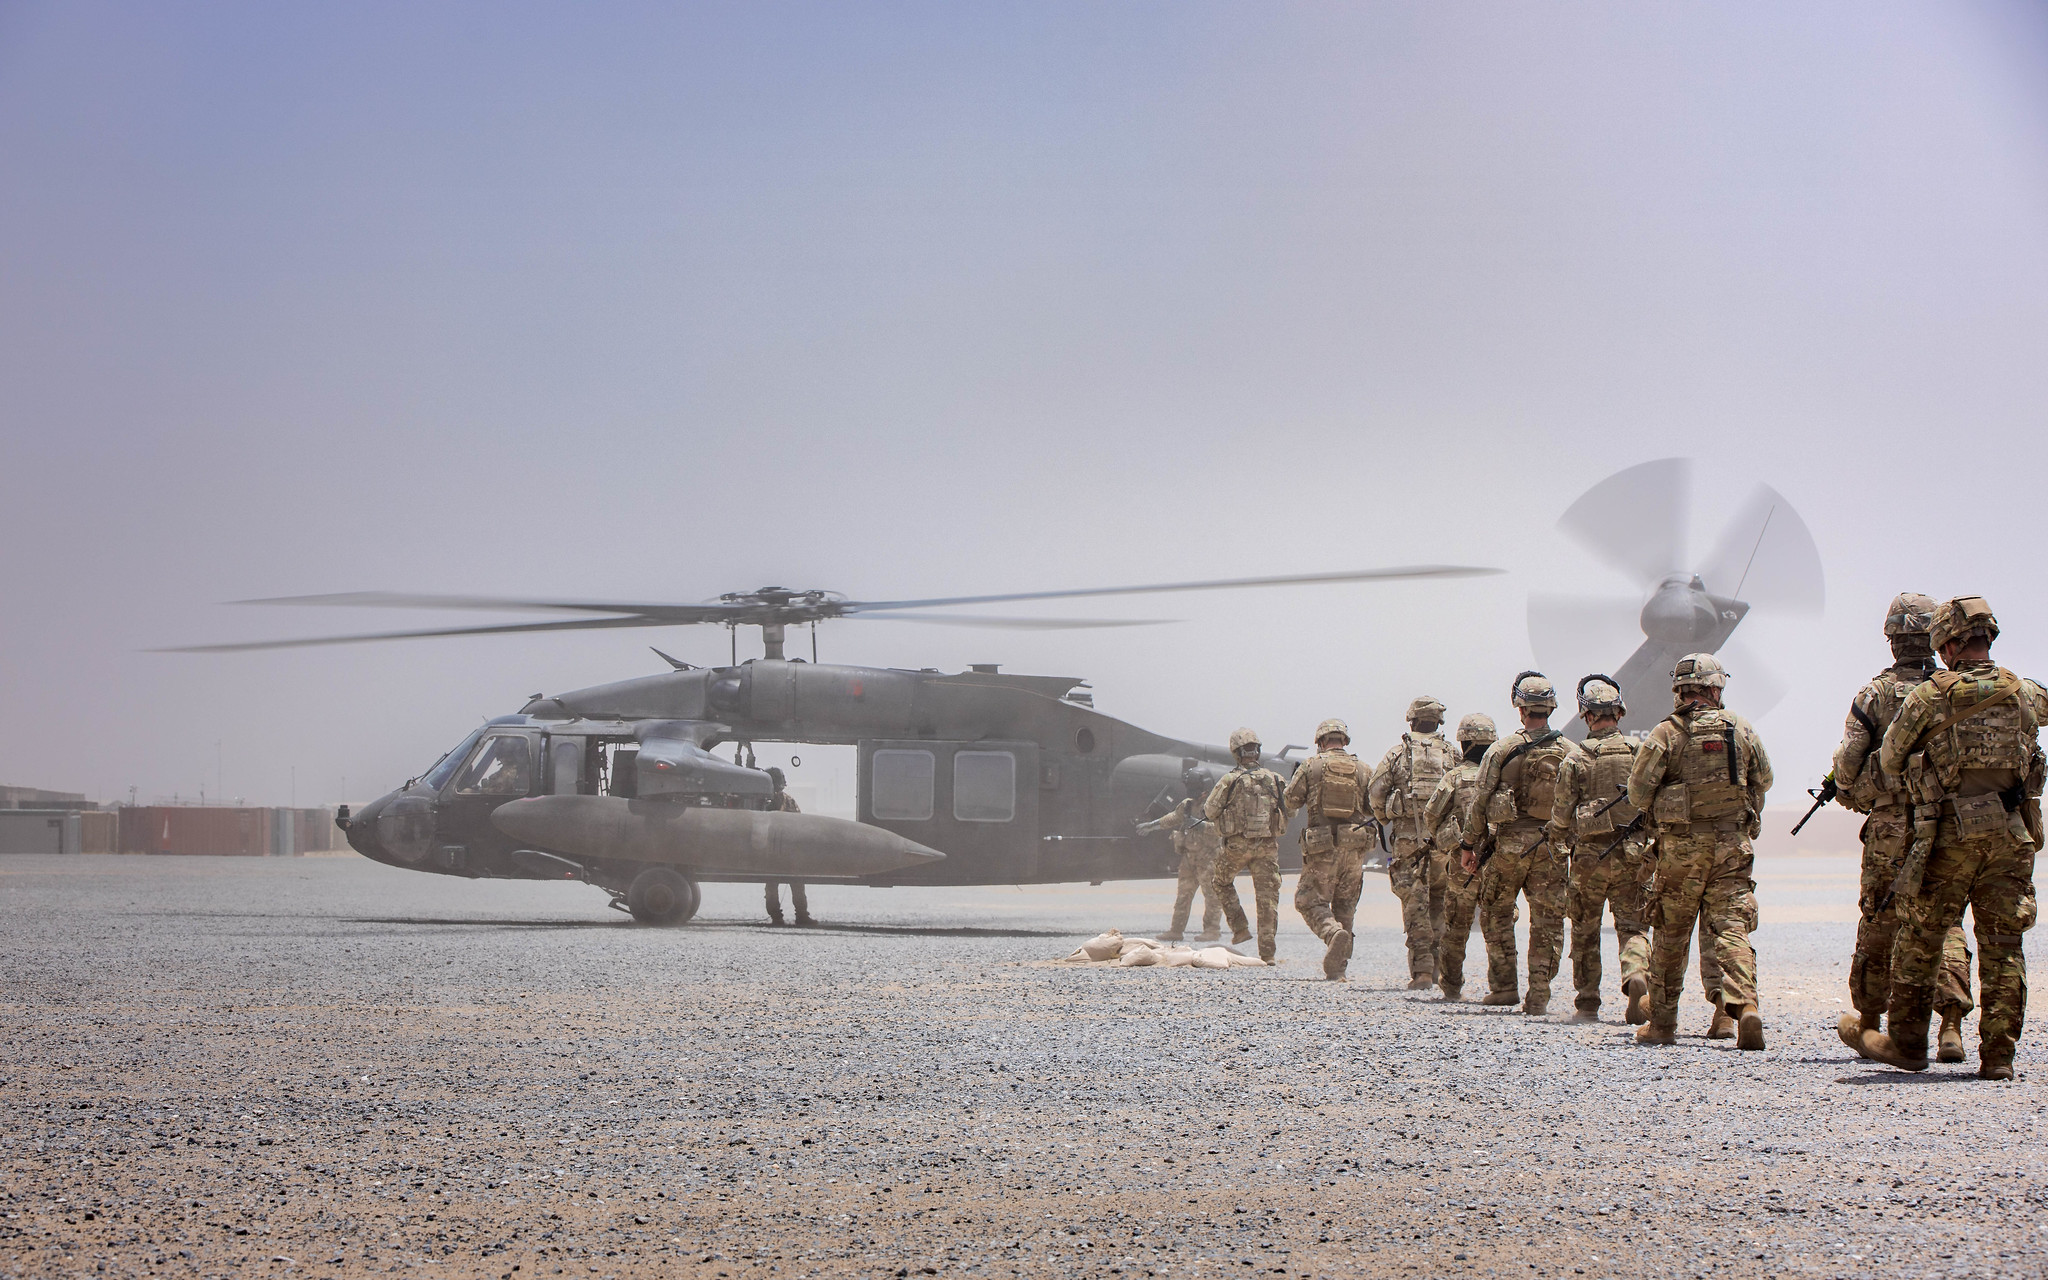 Soldiers from Charlie Company, 4-118 Infantry Regiment, 30th Armored Brigade Combat Team conduct squad assault lanes using aviation support for extraction while deployed in the Central Command area of responsibility for Operation Spartan Shield on May 21, 2020. (Maj. David House/National Guard)